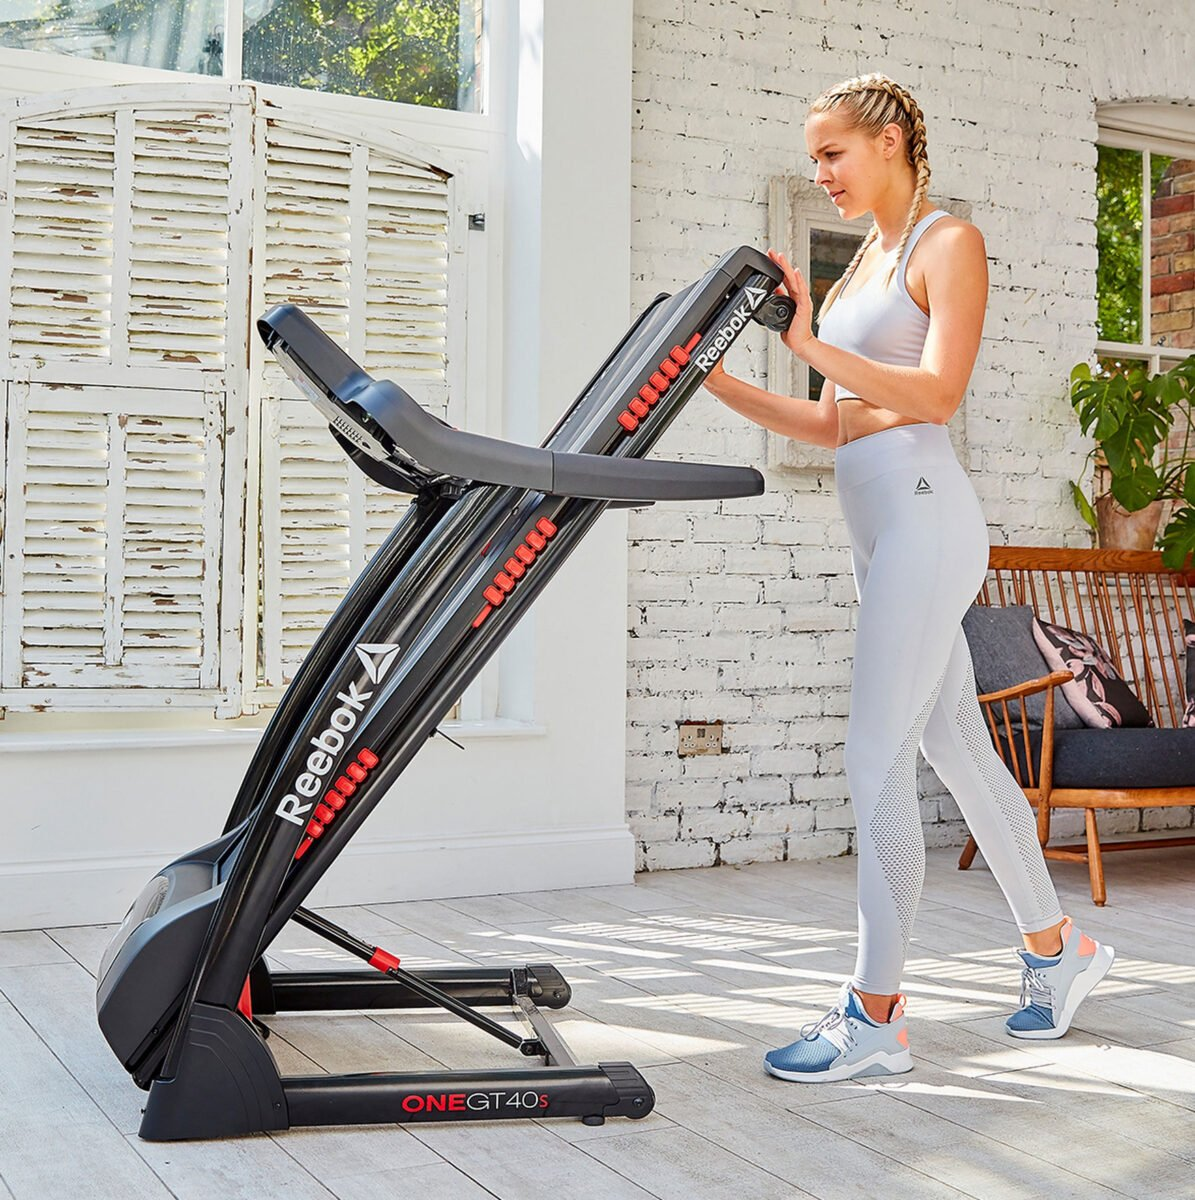 Reebok GT40s Touch Screen Treadmill folded away for storage